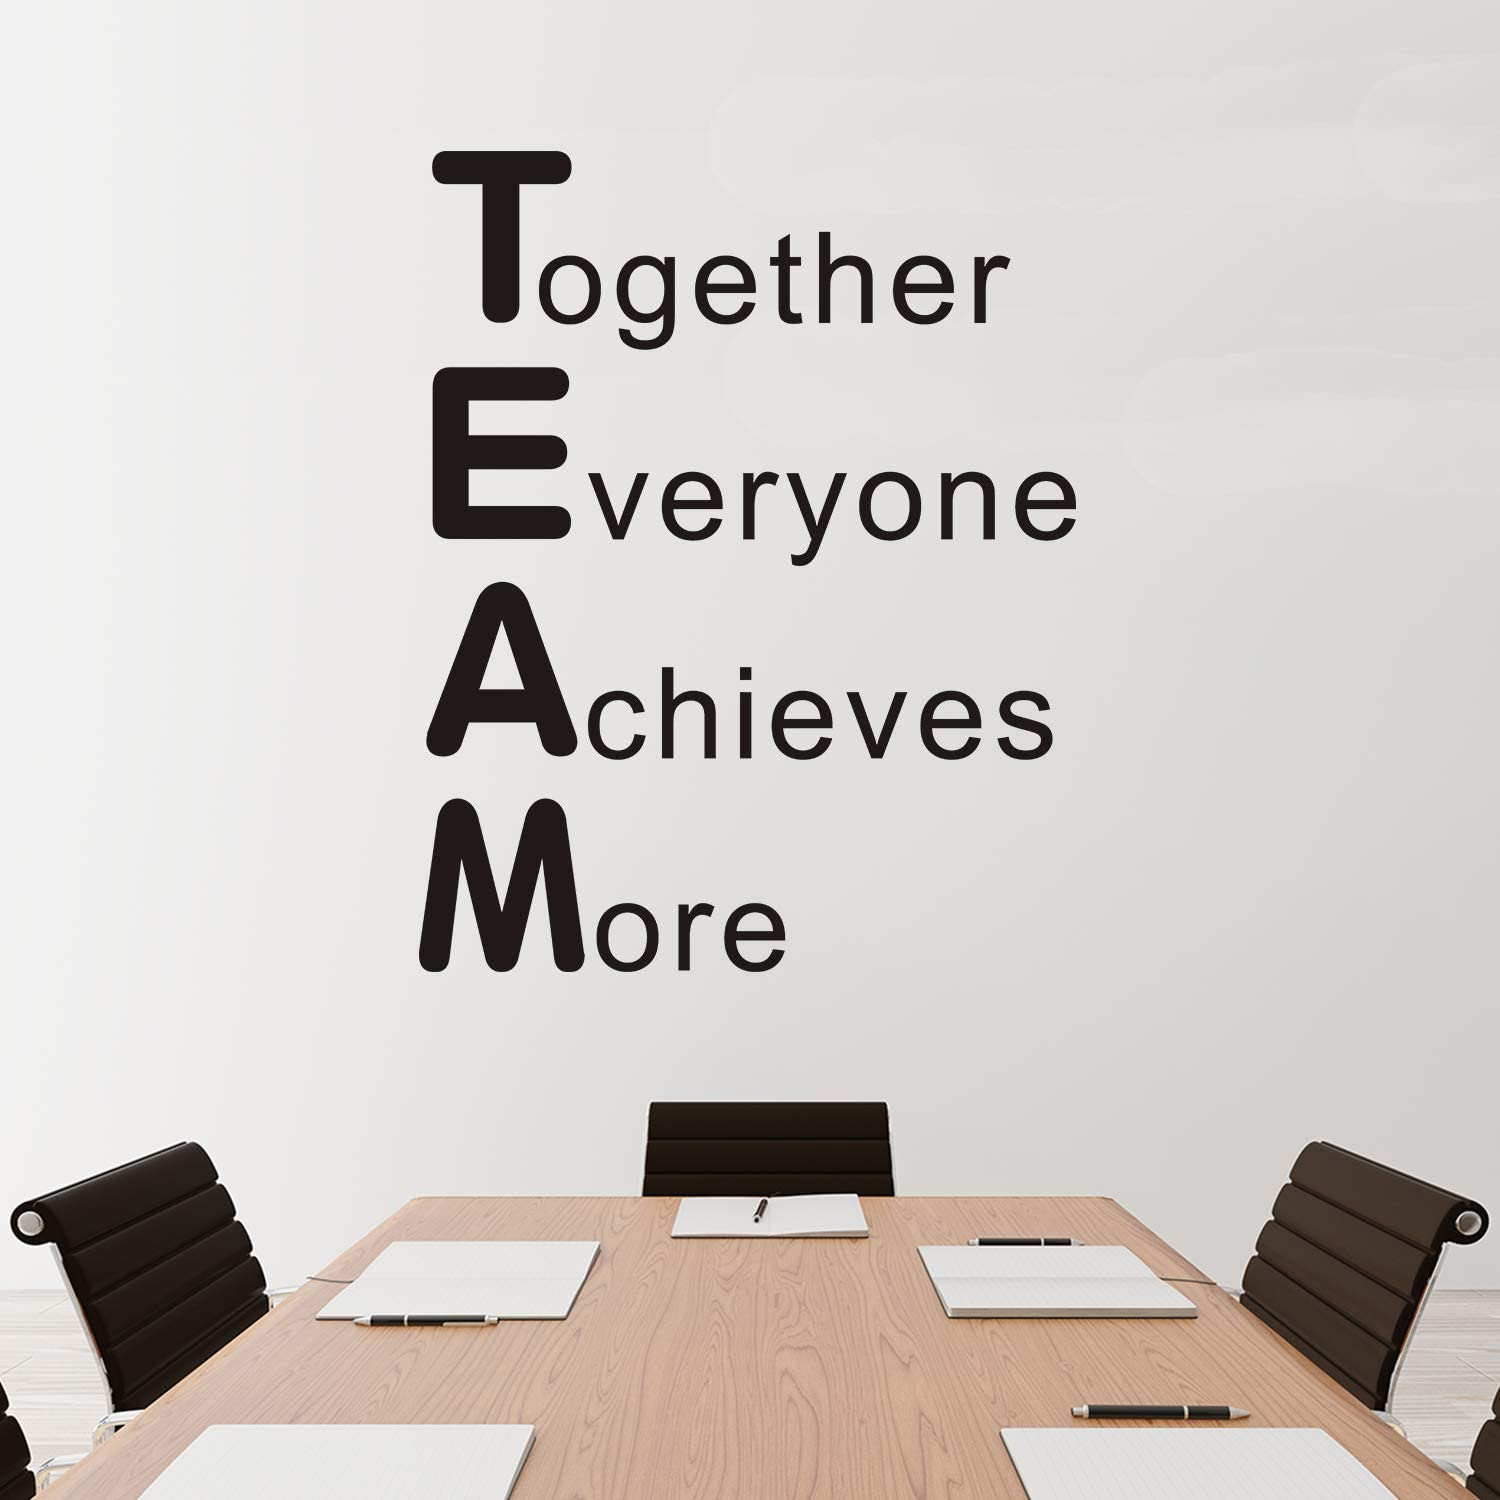 """VODOE Motivational Wall Decals, Office Wall Decals, Inspirational Quotes Teamwork Nursery Classroom Playroom Dorm Family Bedroom Art Home Decor Vinyl Stickers Together Everyone Achieves More 21""""x26.2"""""""